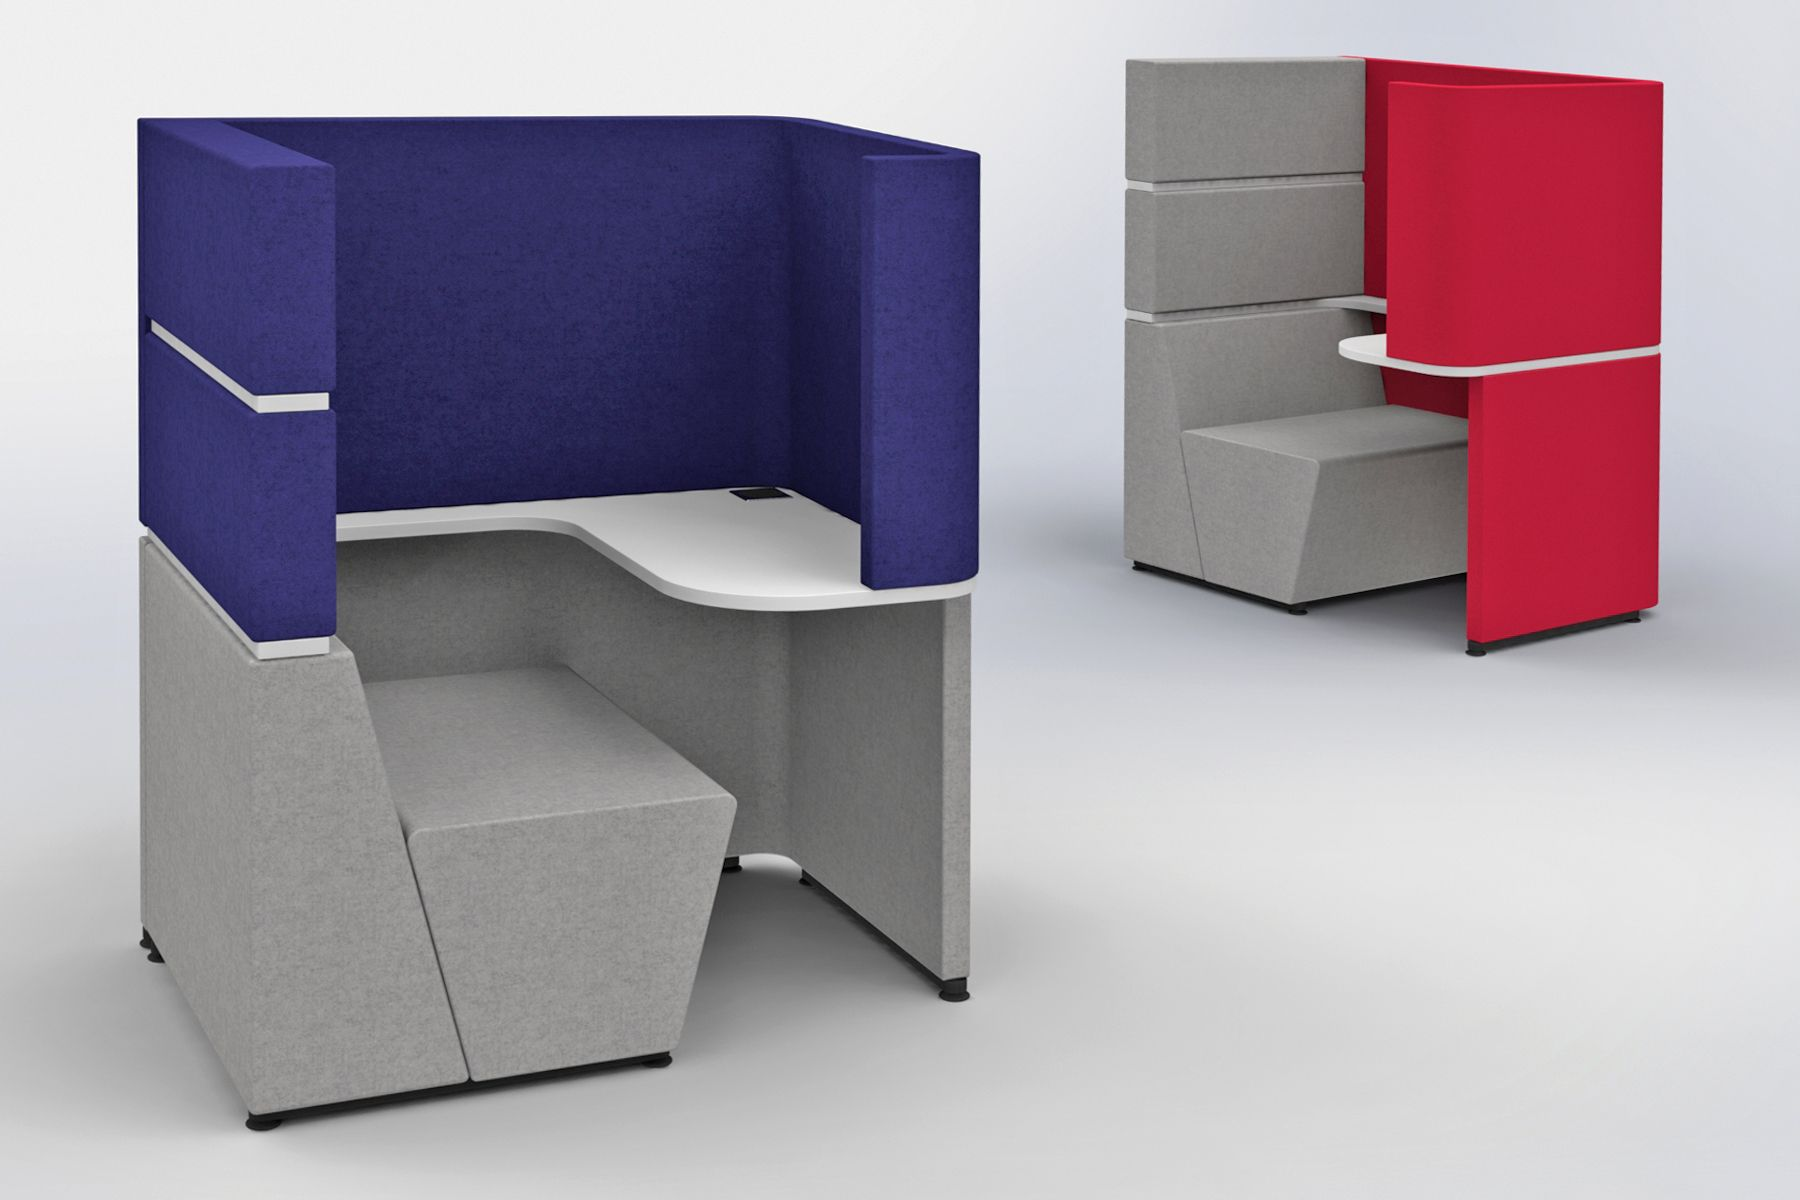 Modern Office Furniture Designed For The Future The Classic School